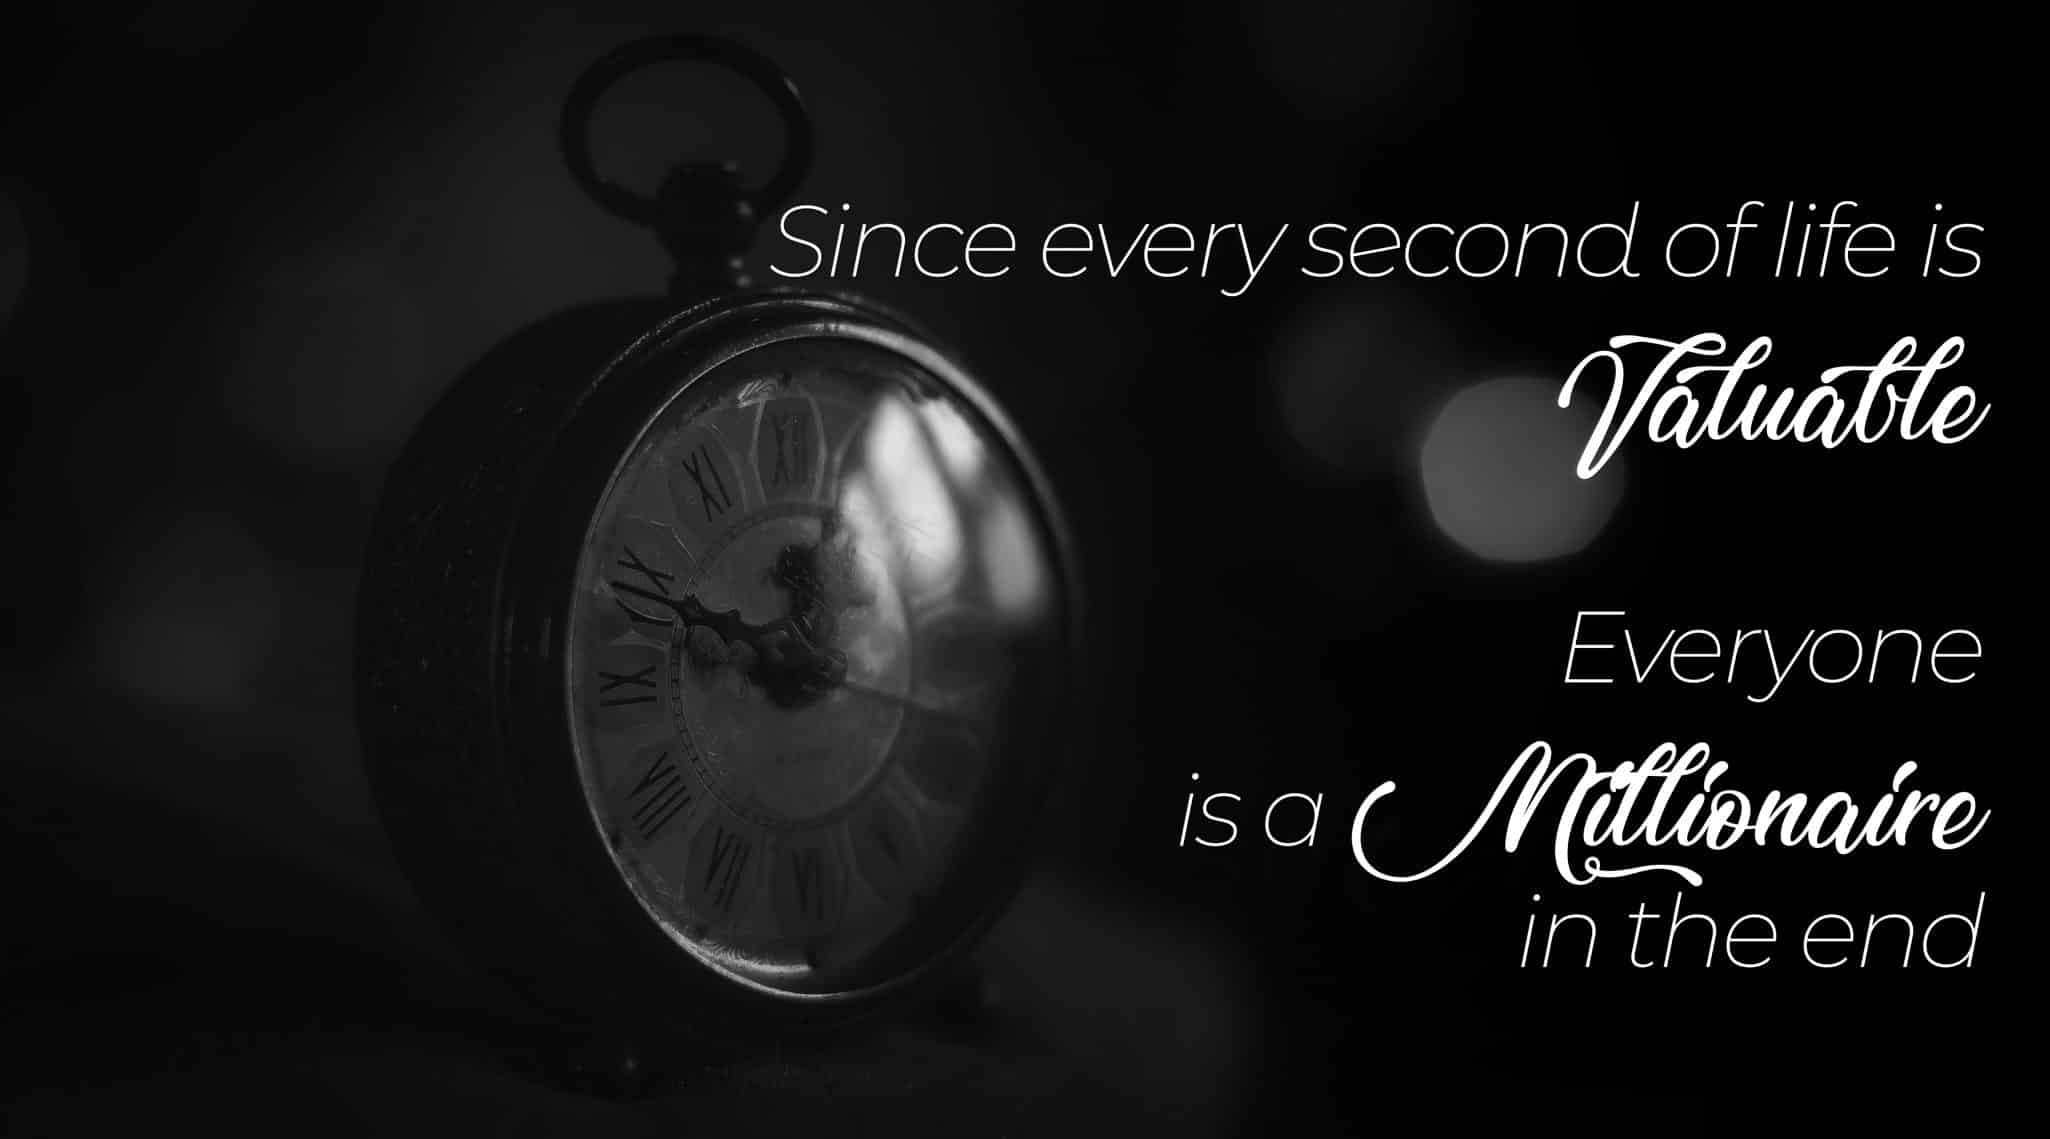 Since every second of life is Valuable, everyone is a Millionaire in the end